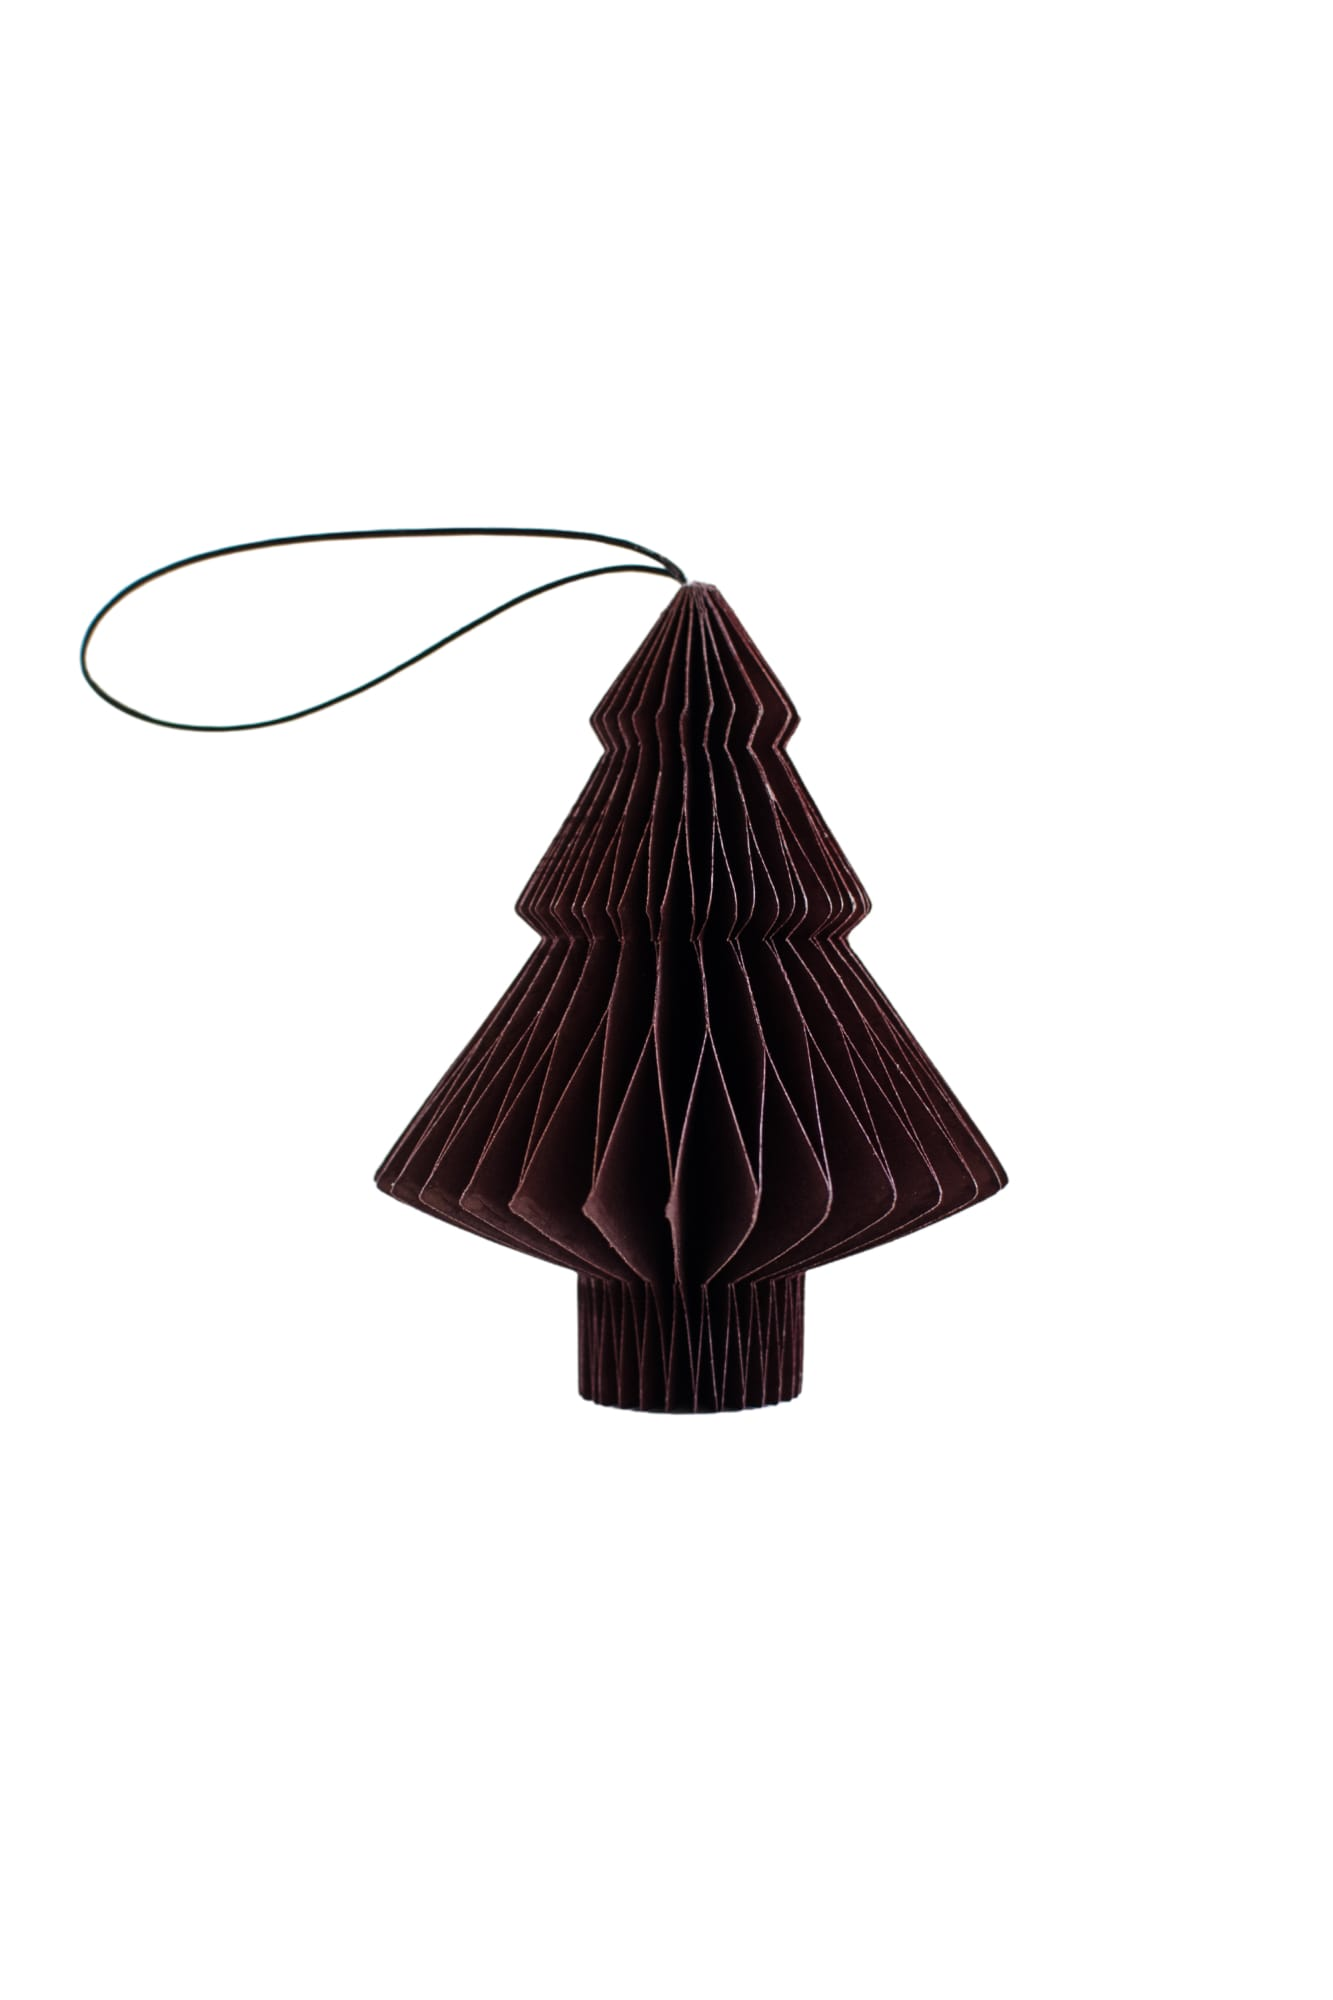 NORDIC ROOMS - CHRISTMAS ORNAMENT - PAPER TREE - DEEP BURGUNDY - Tempted Kensington